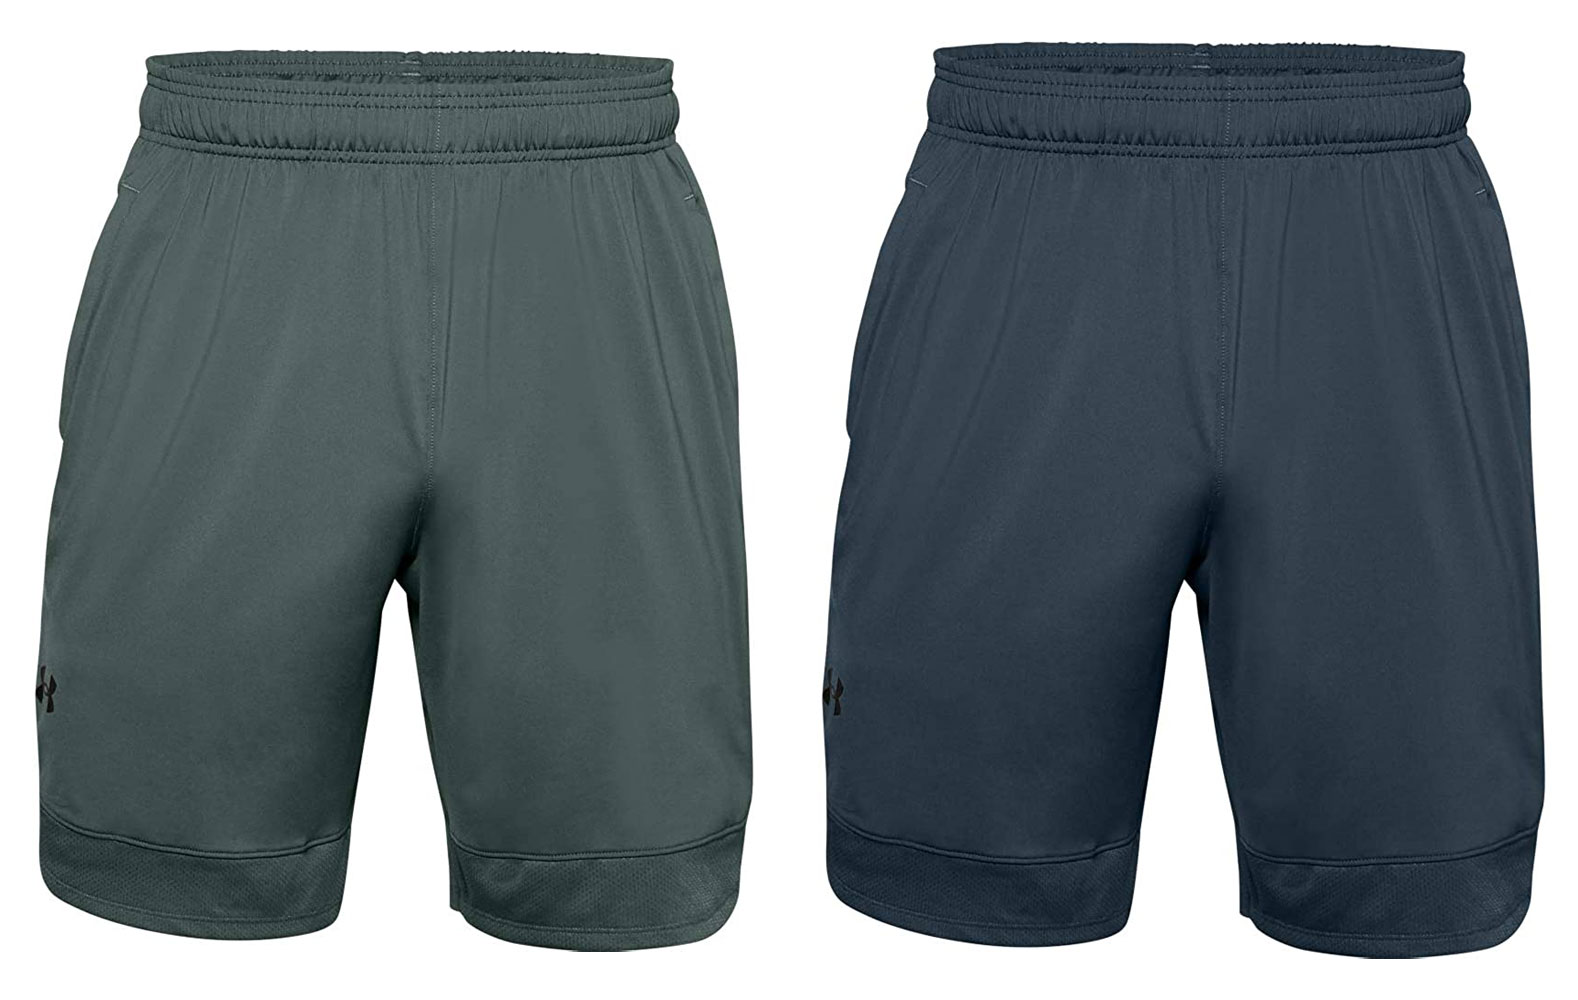 under armour men's training stretch shorts